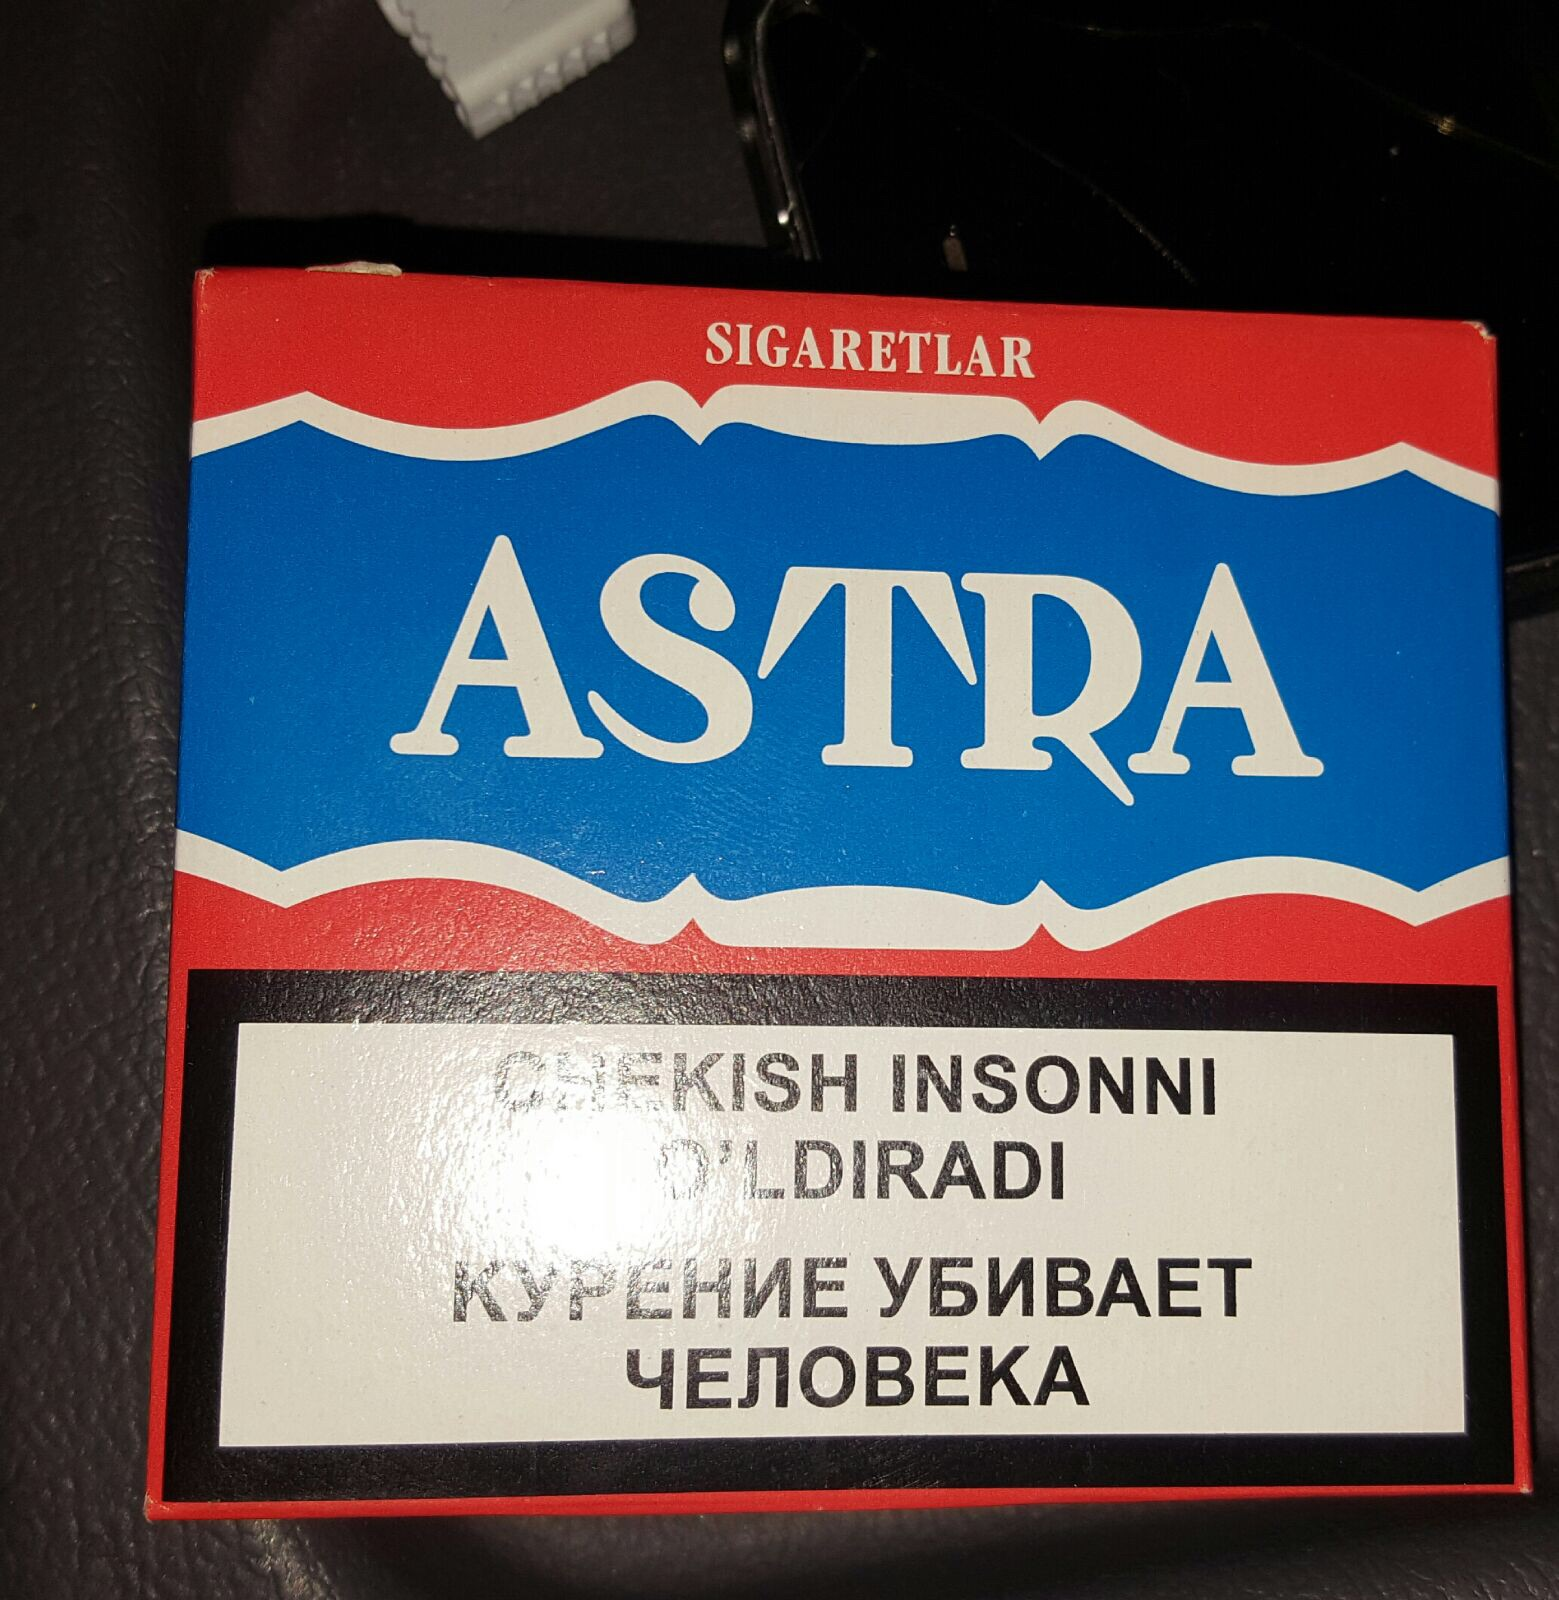 Some filterleas Uzbek cigarettes that Alex found to everybody else's shock and horror.